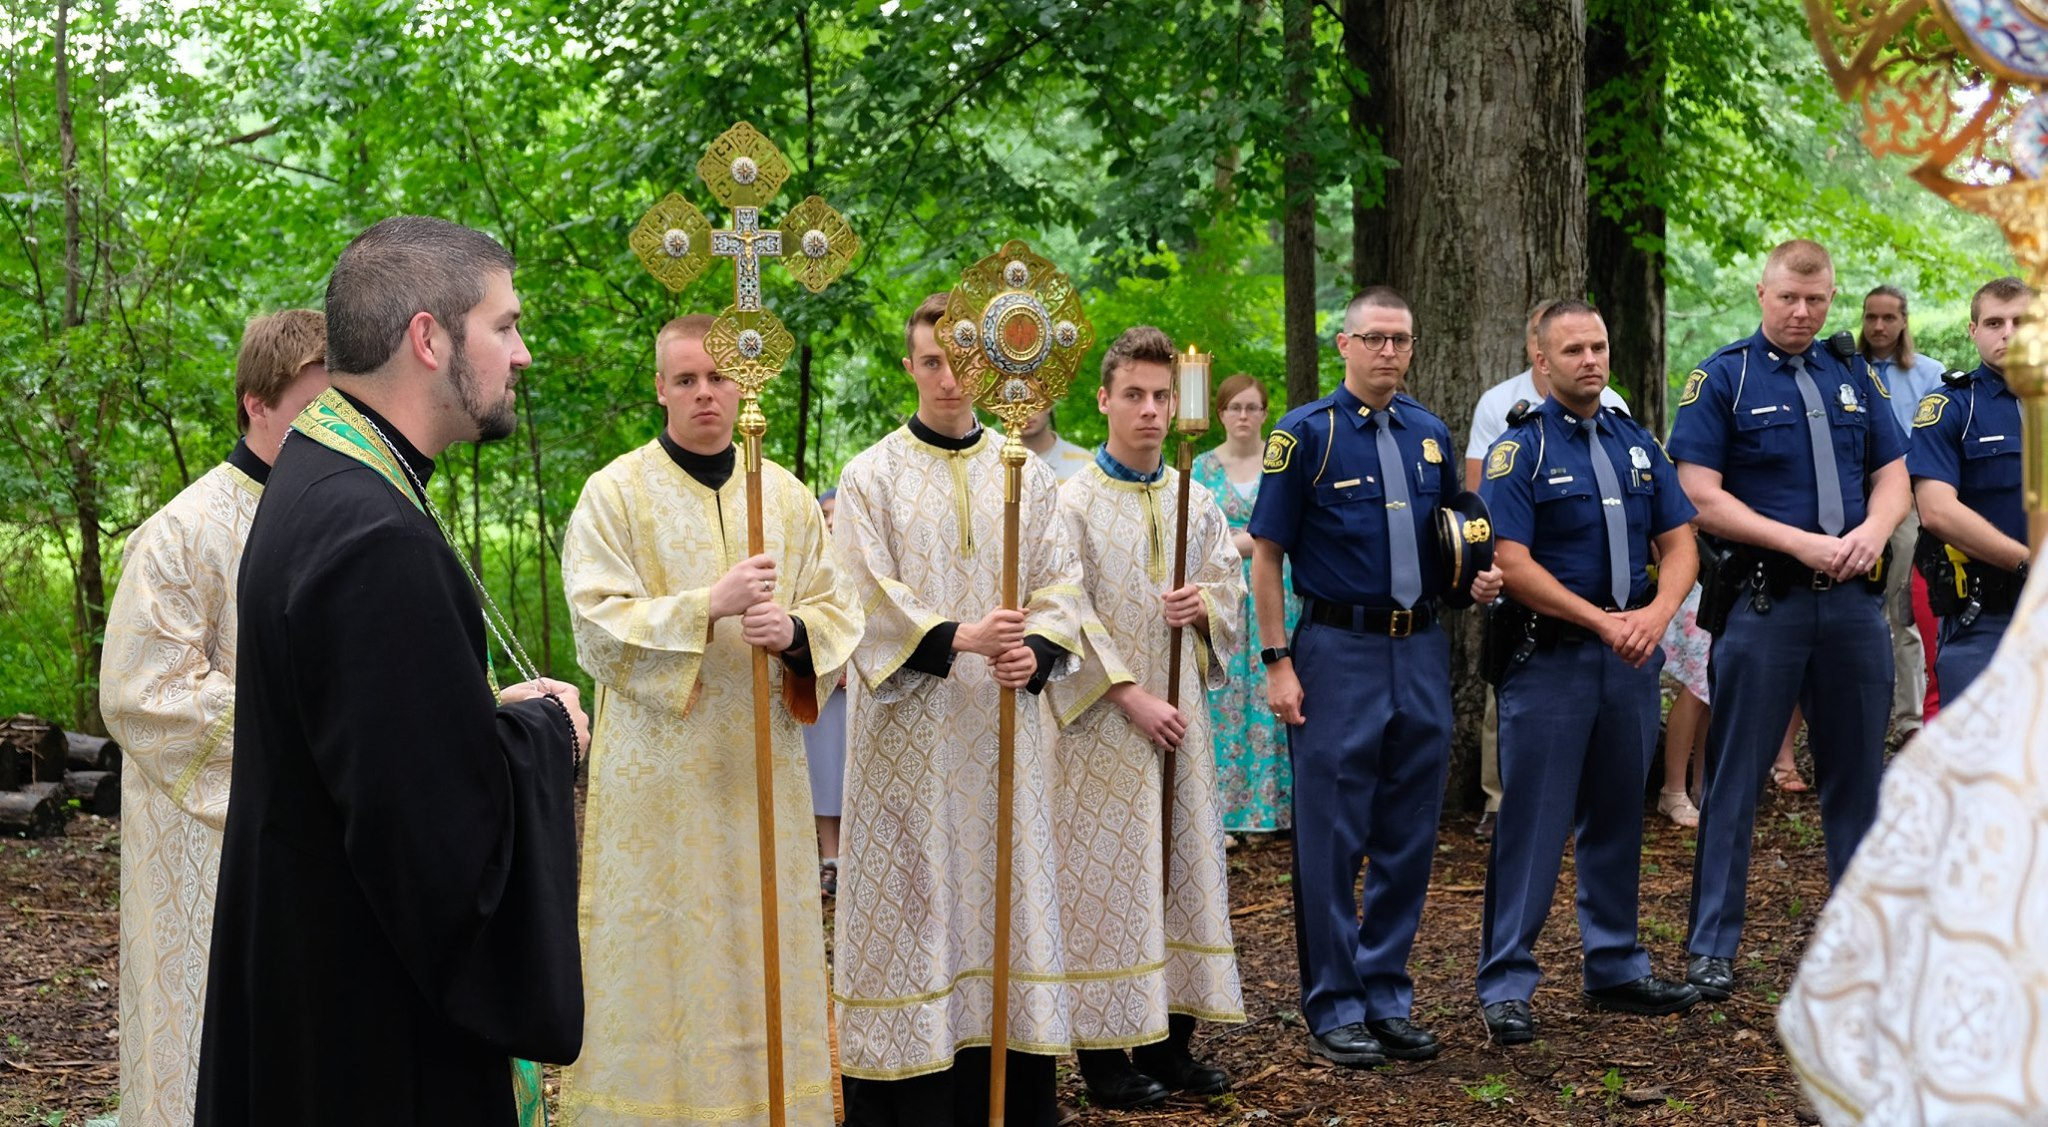 altar servers lined up next to state troopers with priest speaking